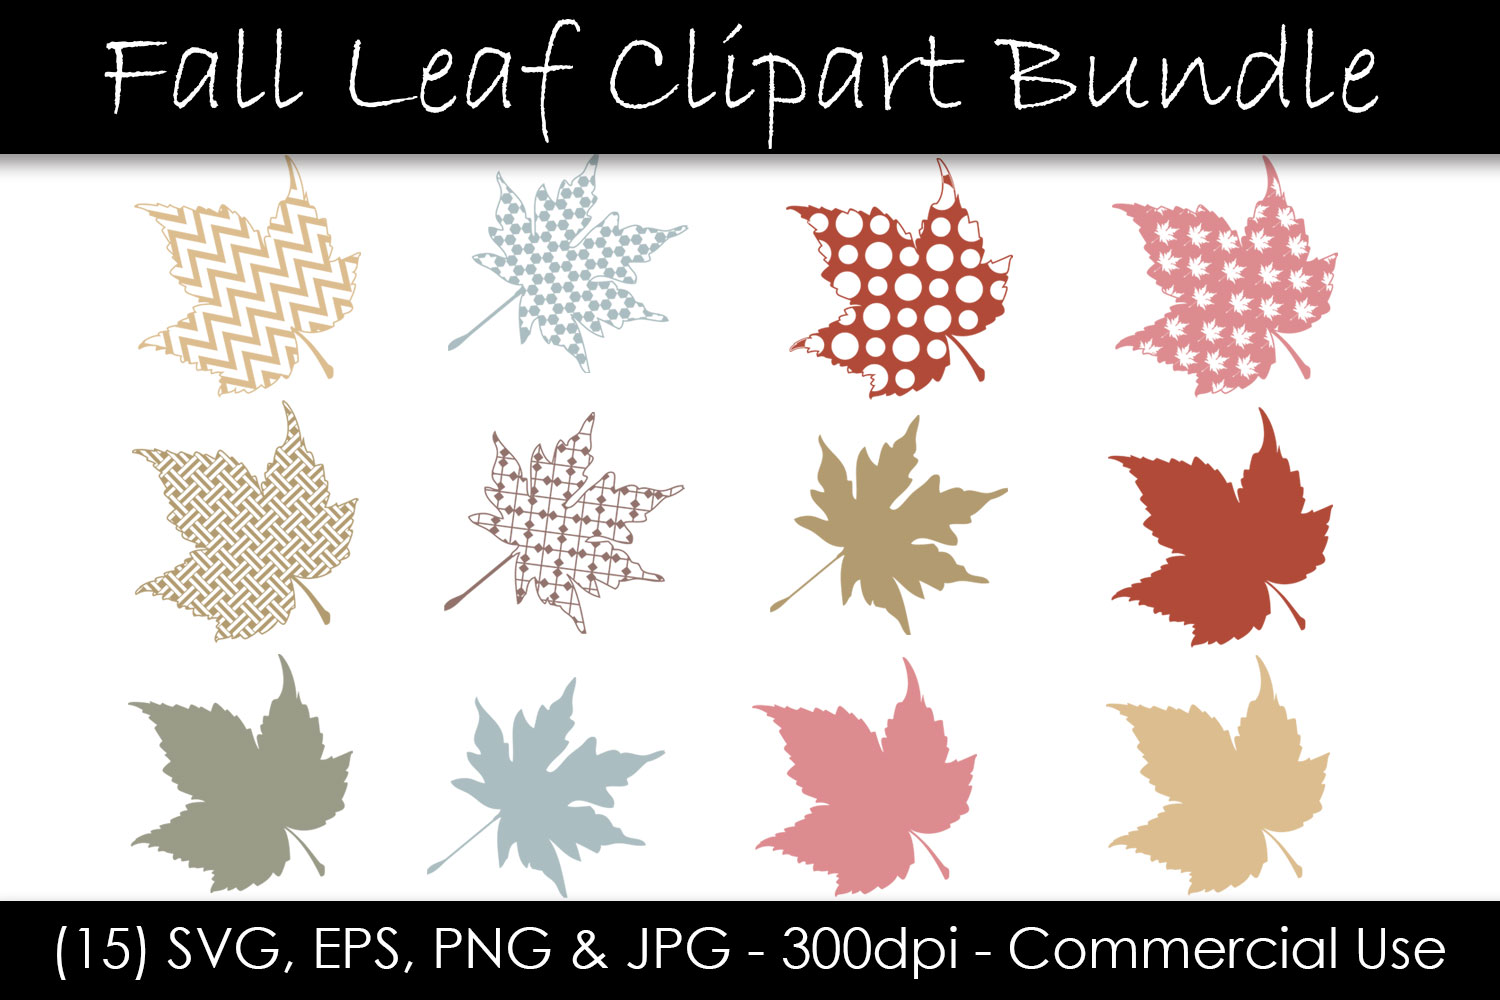 Download Free Fall Leaf Svg Clipart Bundle Graphic By Gjsart Creative Fabrica for Cricut Explore, Silhouette and other cutting machines.